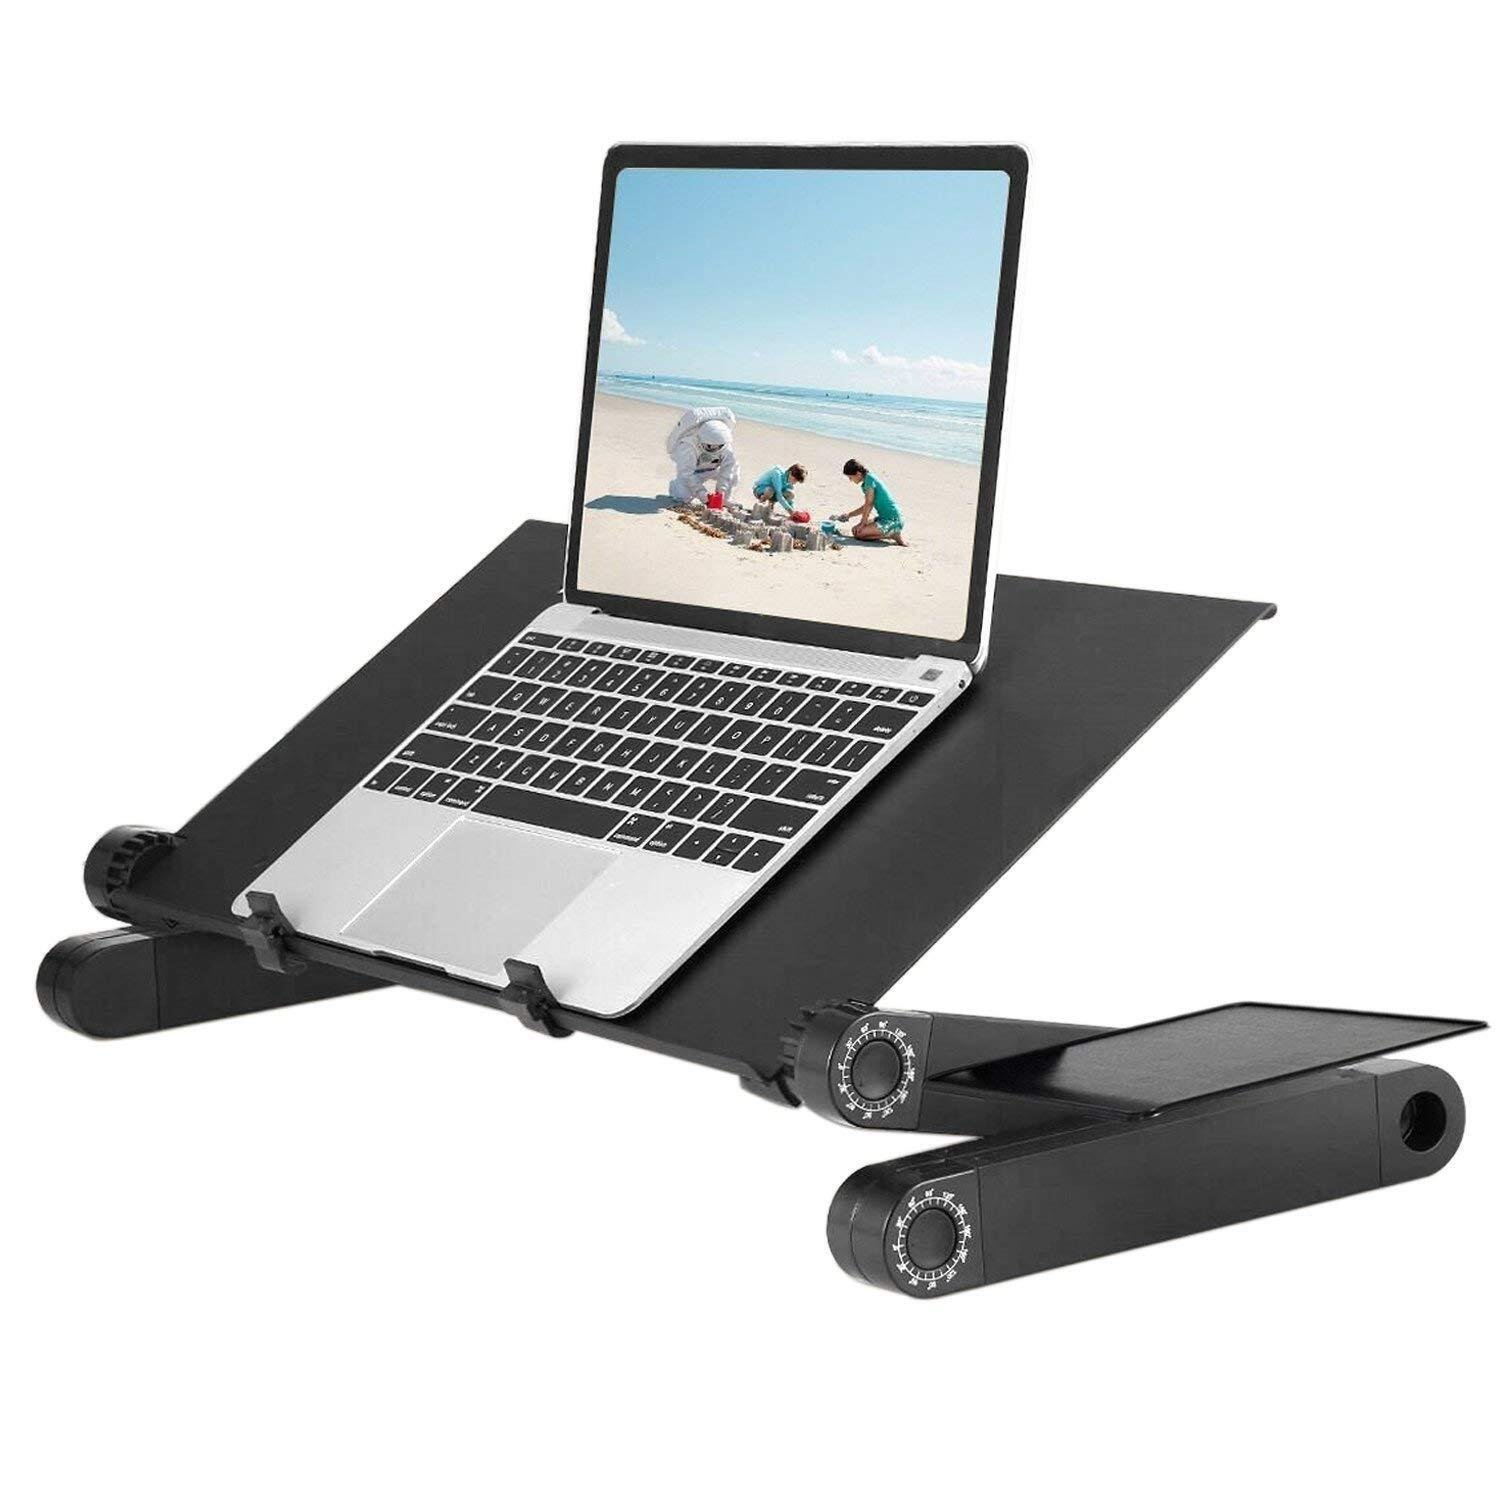 AUSPT Adjustable Laptop Stand for Bed Computer Table Desk for Laptop Folding Laptop Desk Breathable Ventilation Lapdesk with Mouse Pad Side Mount Light Weight | Ergonomic Bed Lap Tray